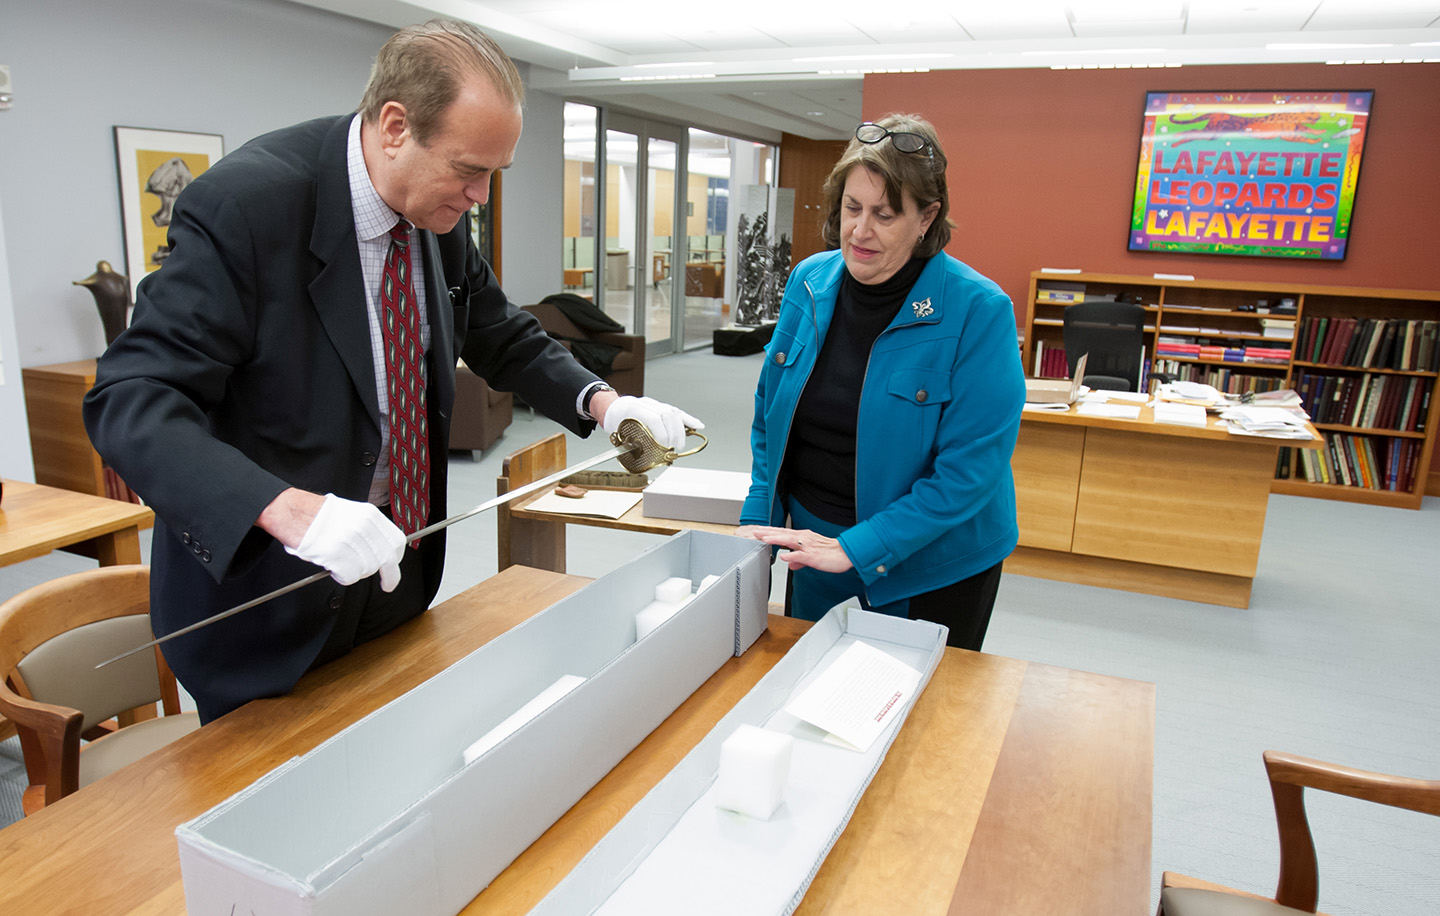 Dimitri Villard examines the Marquis de Lafayette's sword with Diane Shaw.